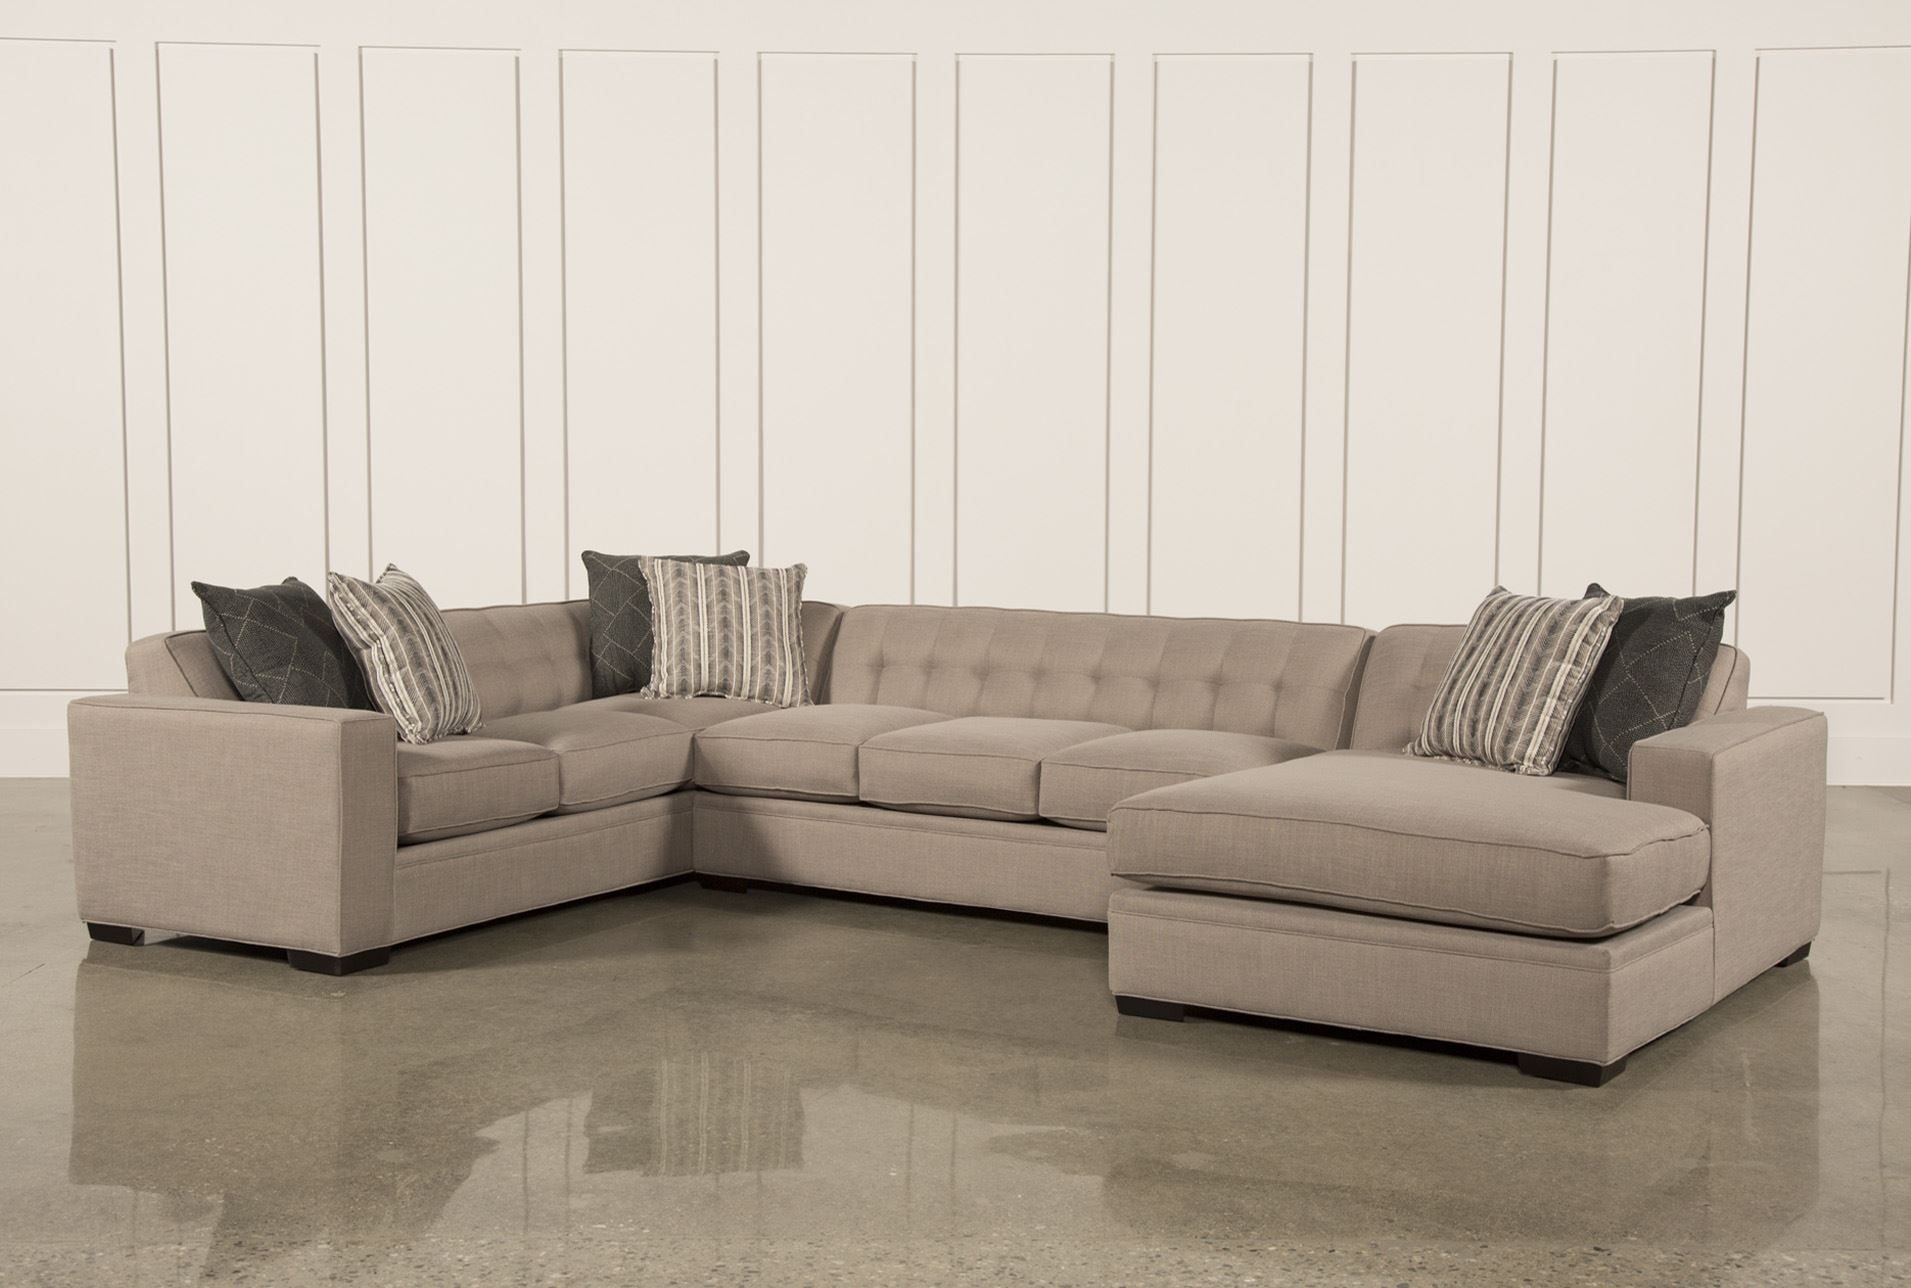 Corbin 3 Piece Sectional W/raf Chaise | New House: Loft | Pinterest Inside Norfolk Grey 6 Piece Sectionals With Laf Chaise (Image 7 of 25)